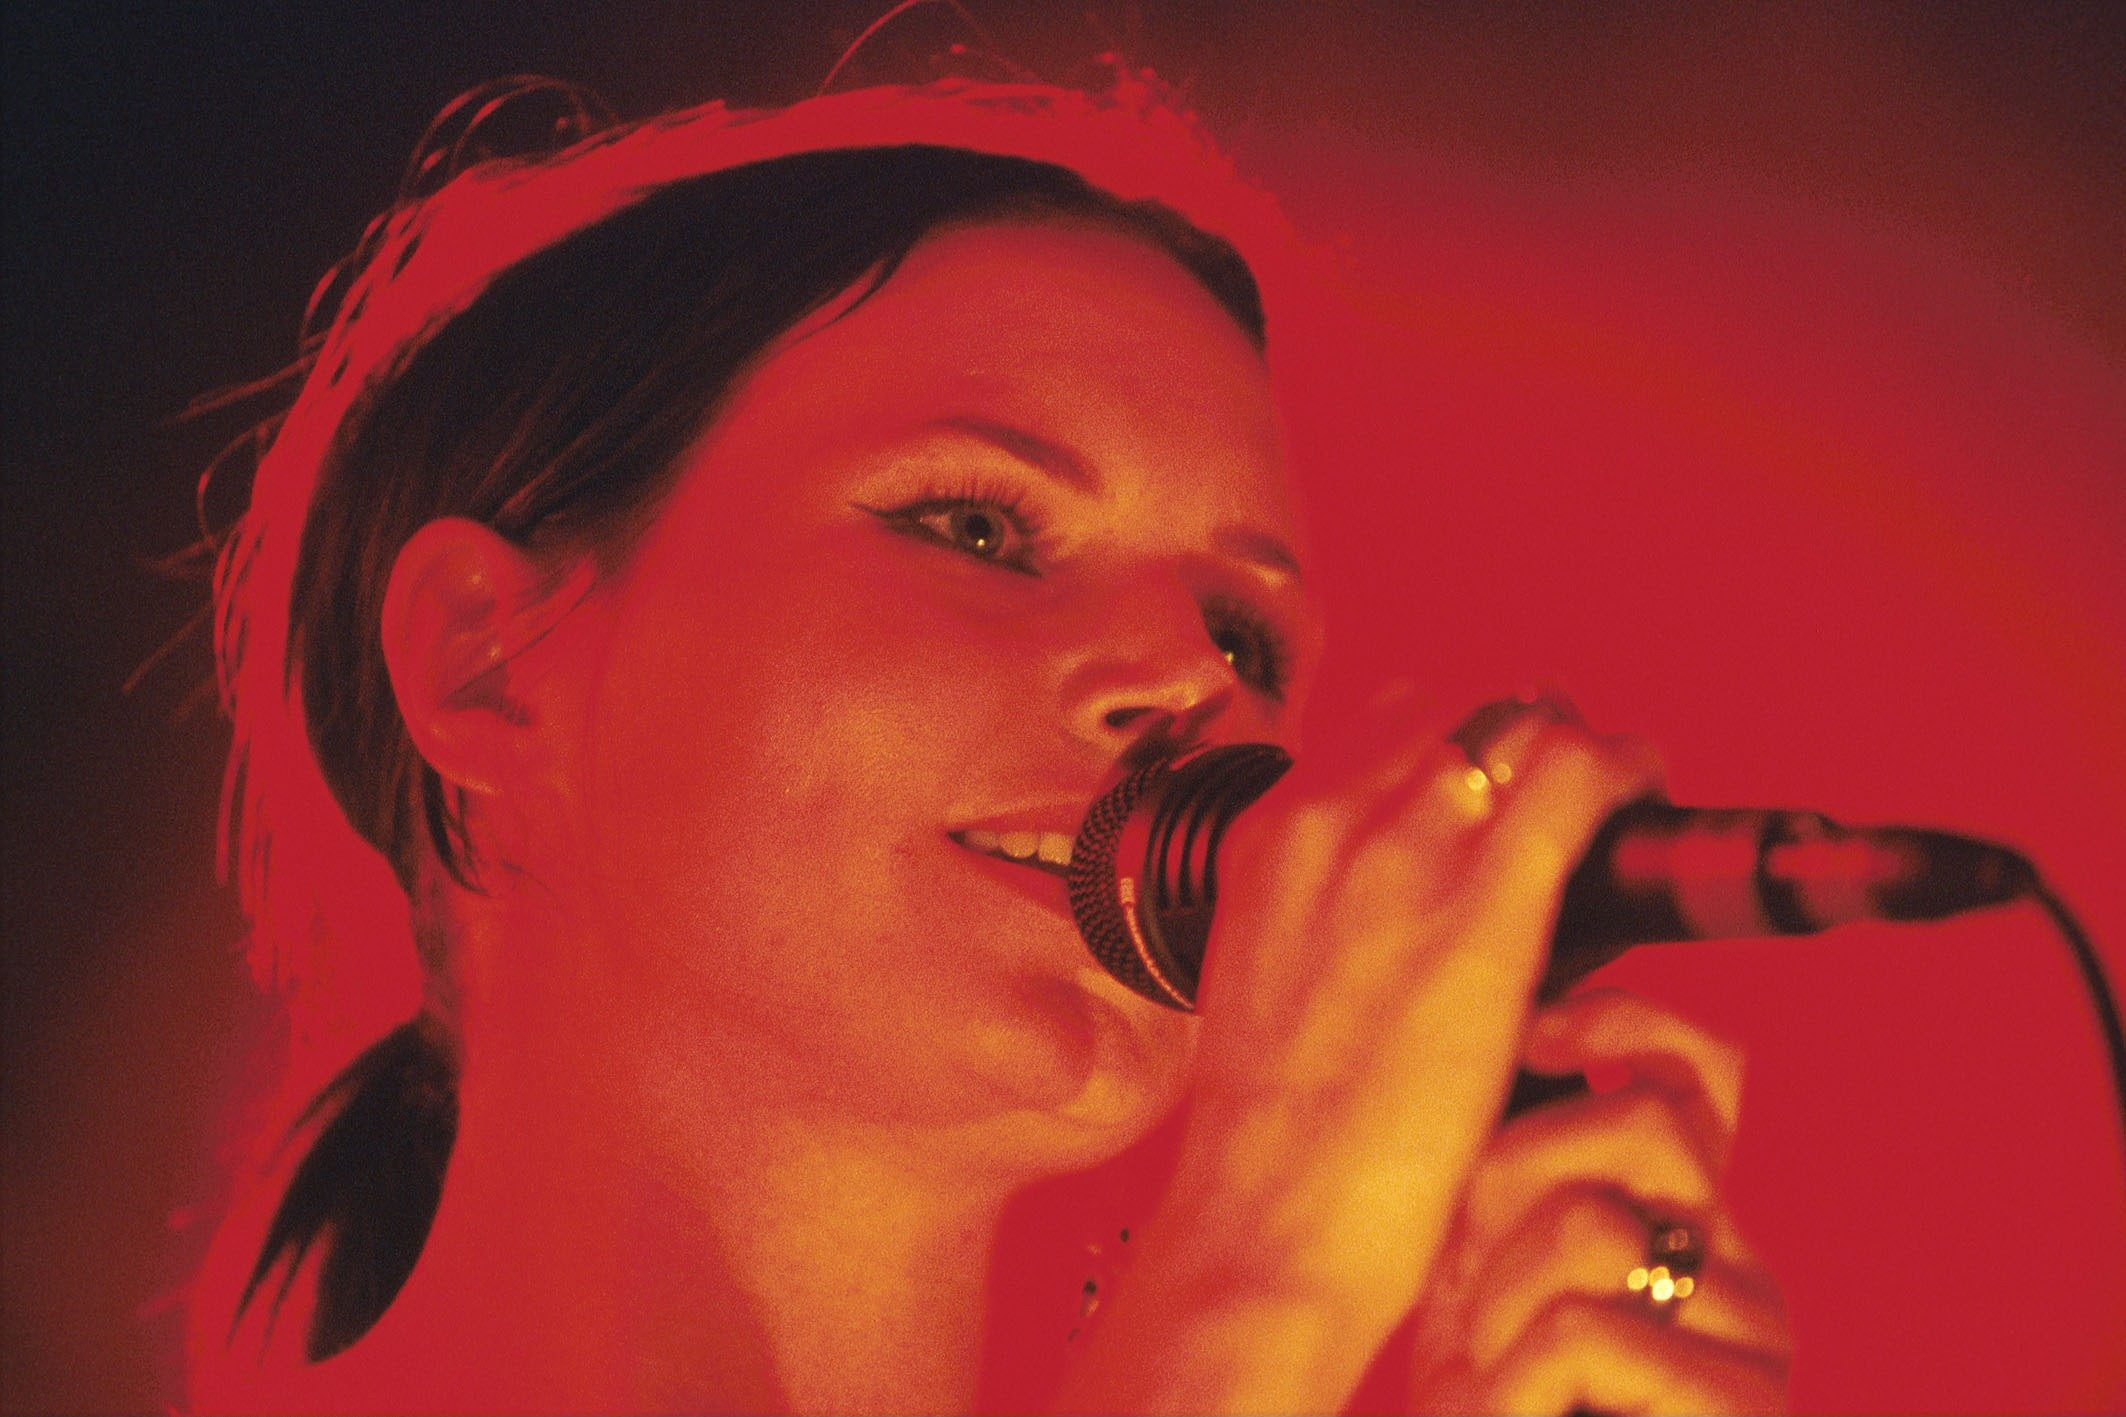 A CAMP (NINA PERSSON of the CARDIGANS) live im Metropolis, Muenchen am 11.10.2001, 11.10.2001 *** Local Caption *** 00064034